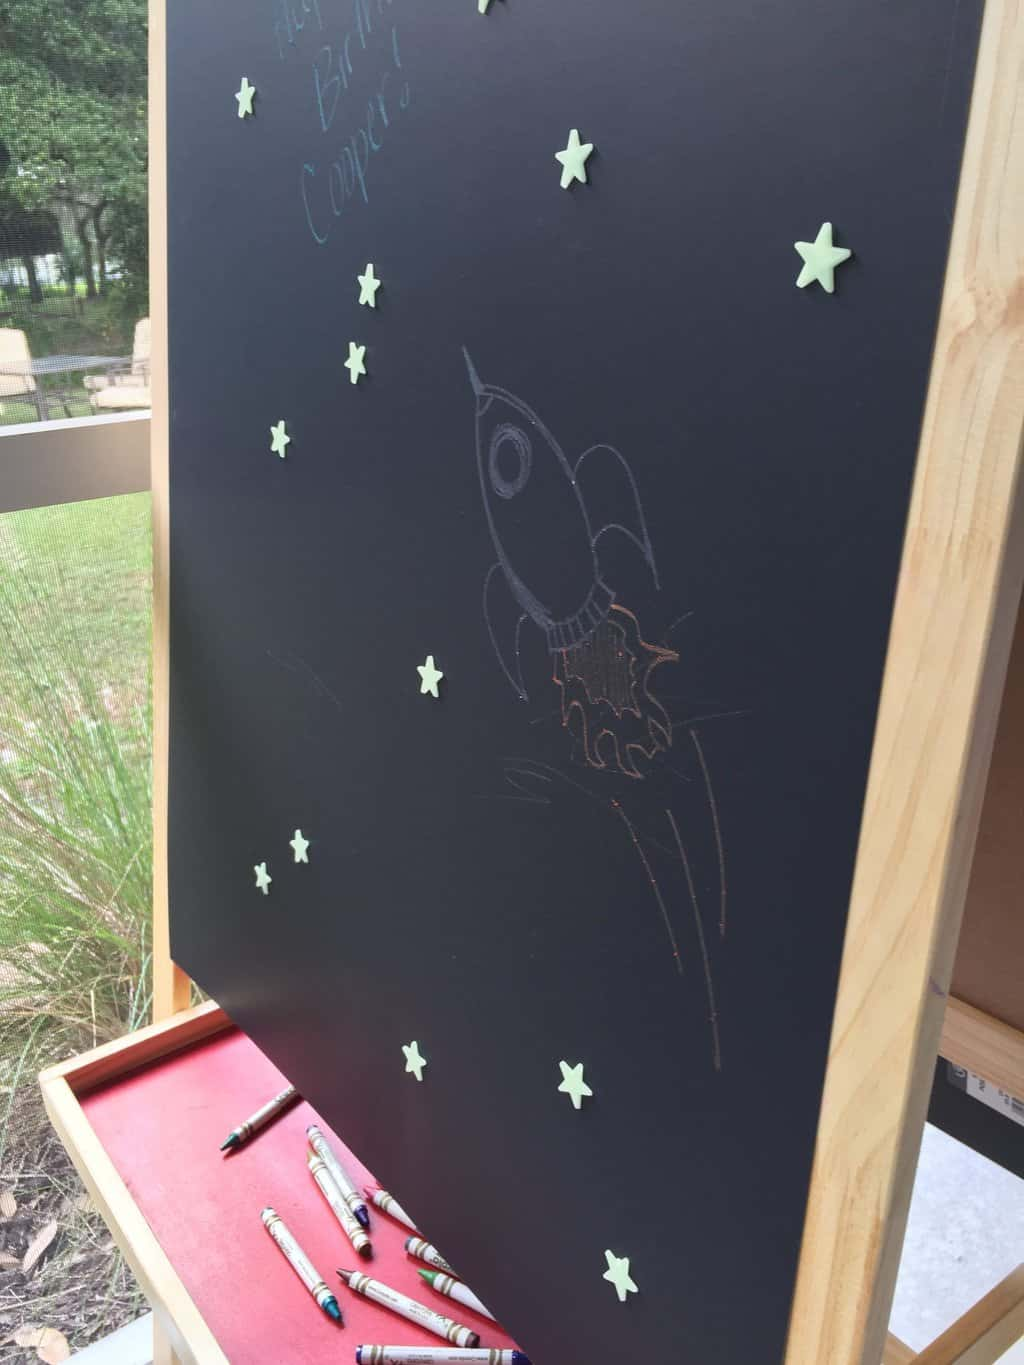 My sister put together this cute space-inspired drawing area. 1. Put black poster board over an easel or stand. 2. Draw rockets or planets with neon crayons to get the kids inspired. 3. Add glow in the dark star stickers. Major fun!